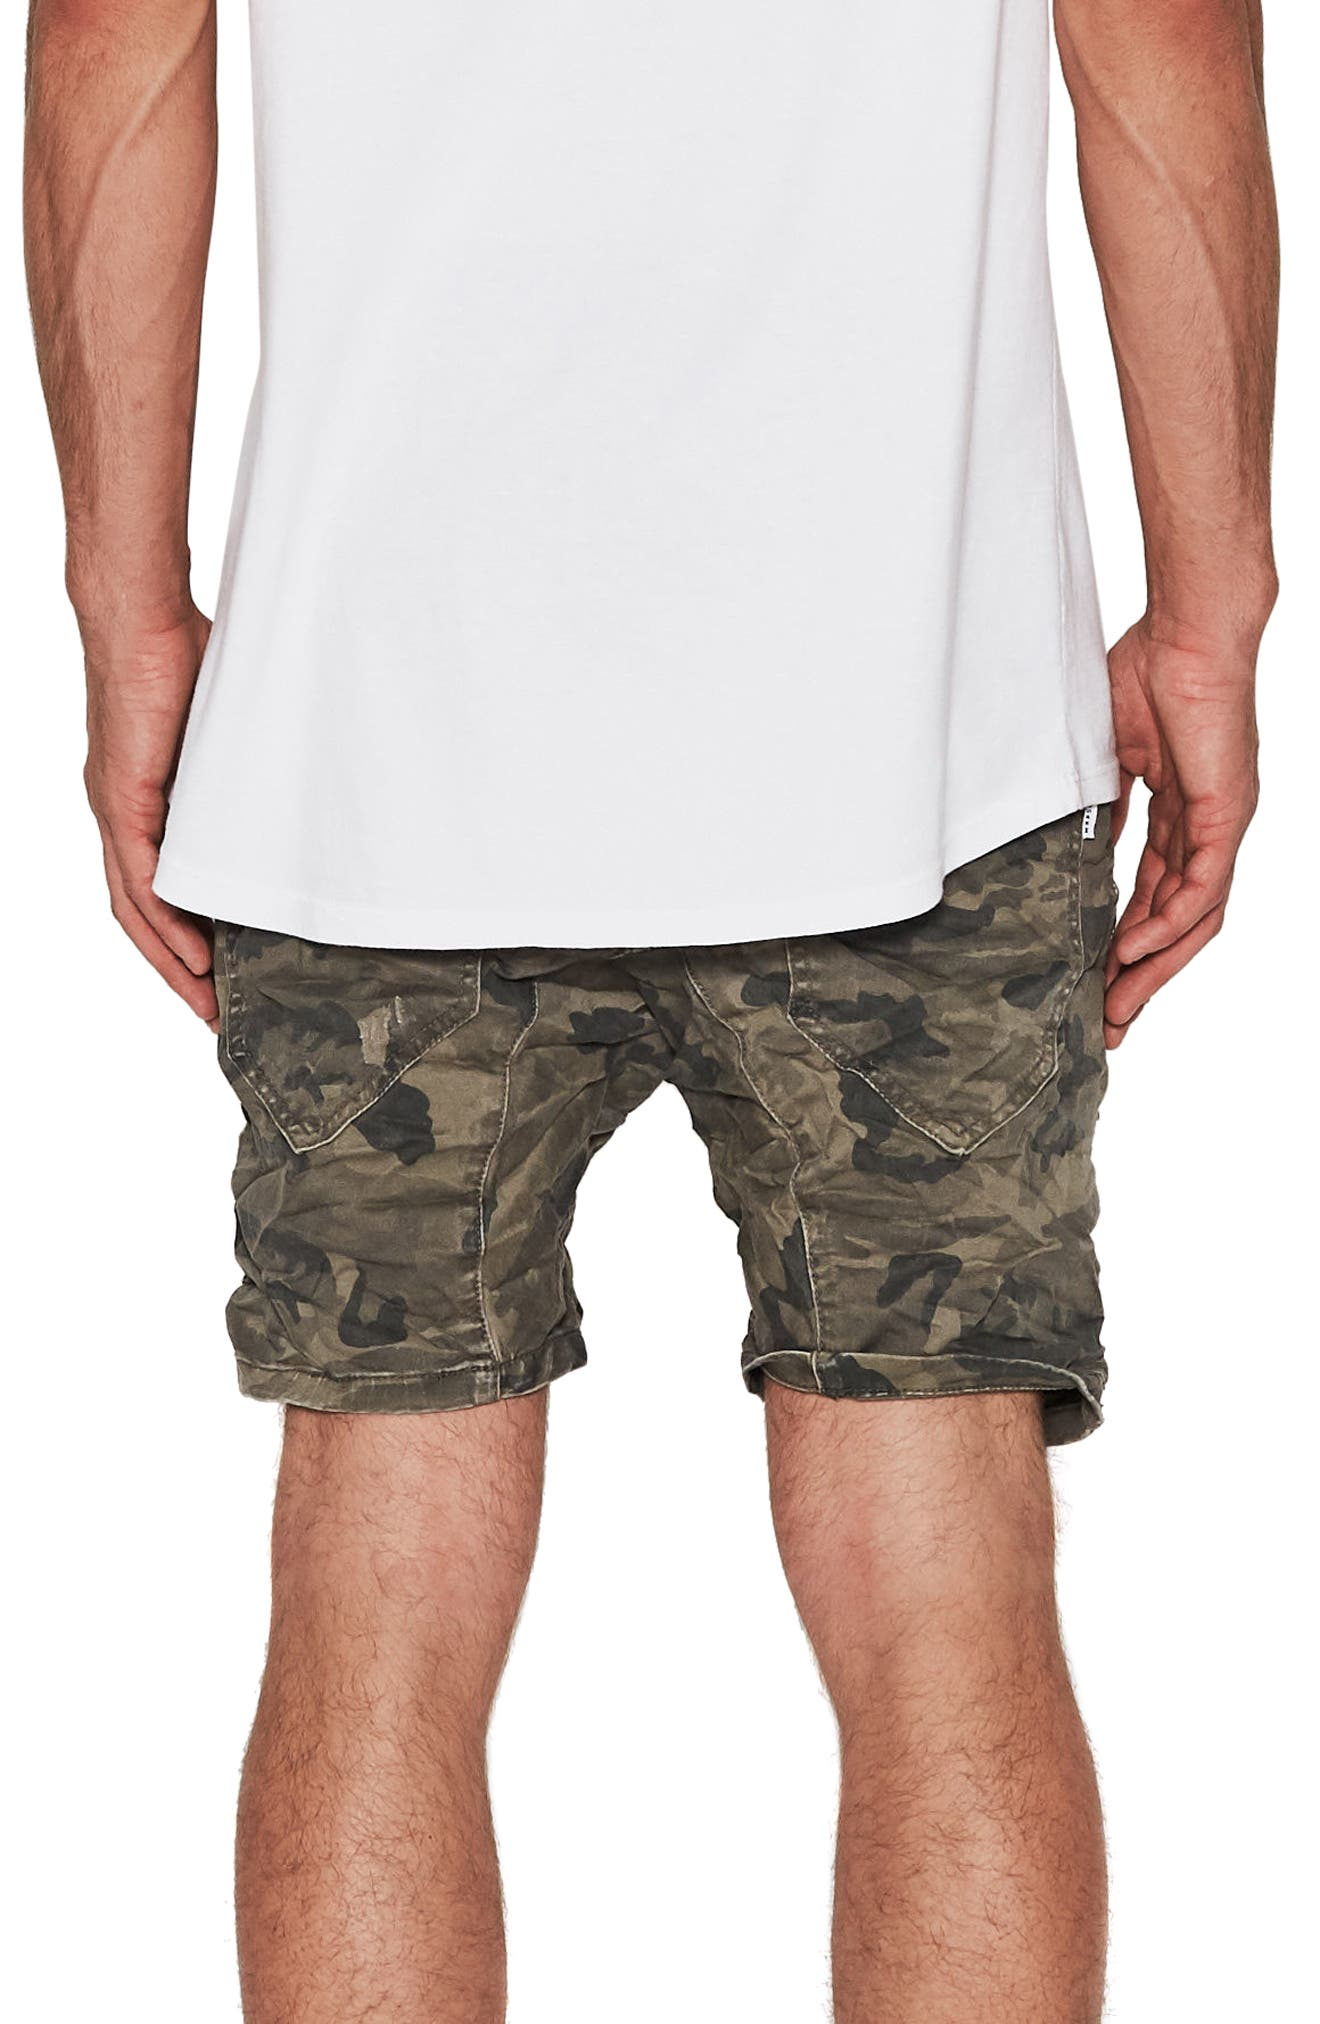 Destroyer Shorts,                             Alternate thumbnail 3, color,                             Airwolf Camo